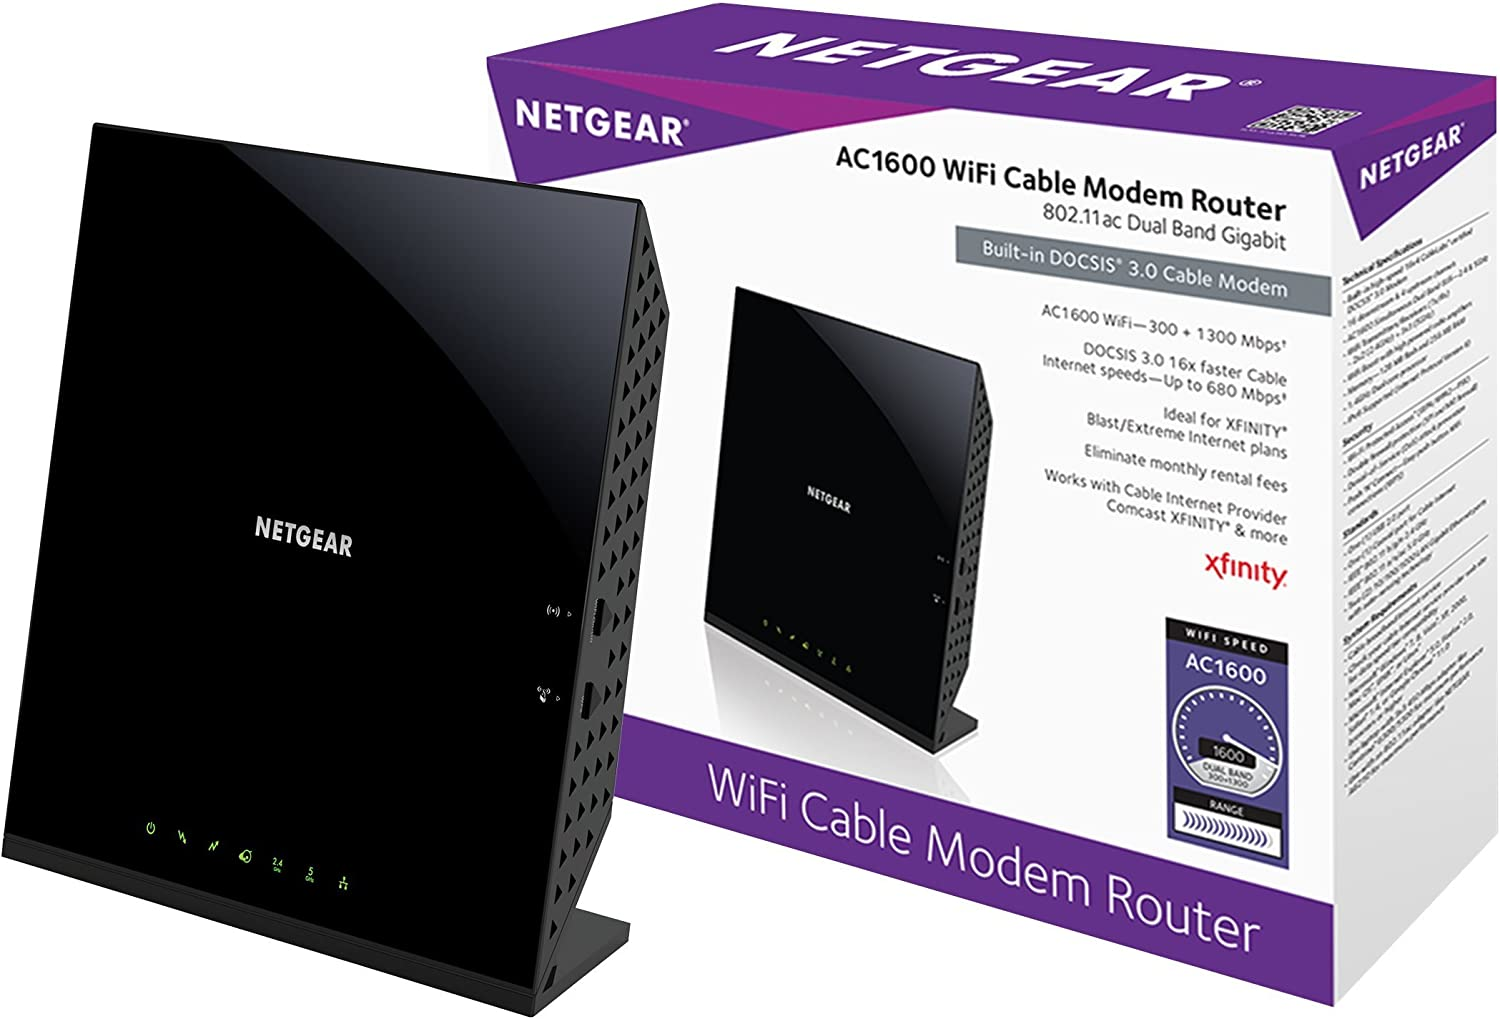 Netgear c6250-100nas ac1600 (16x4) wifi cable best modem router combo (c6250) docsis 3.0 certified for xfinity comcast, time warner cable, cox, more